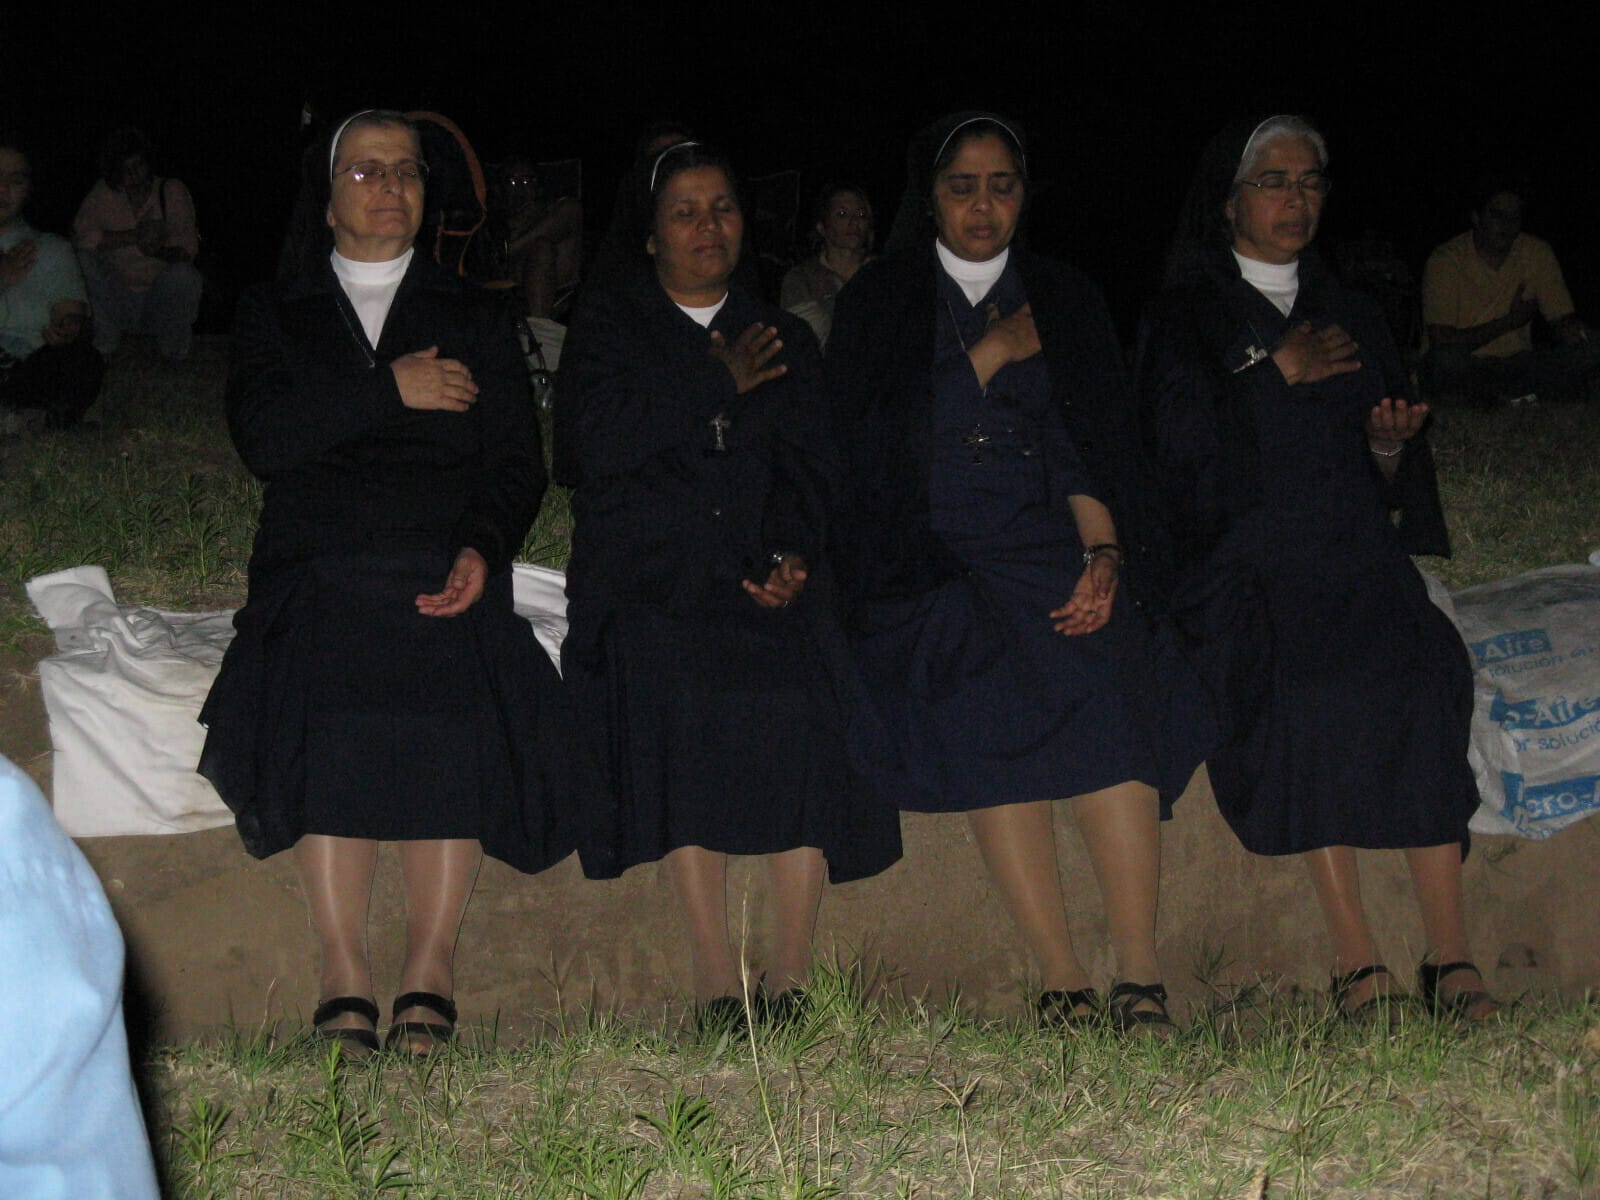 nuns-gettting-self-realization at a sahaja yoga meditation public program in Brazil